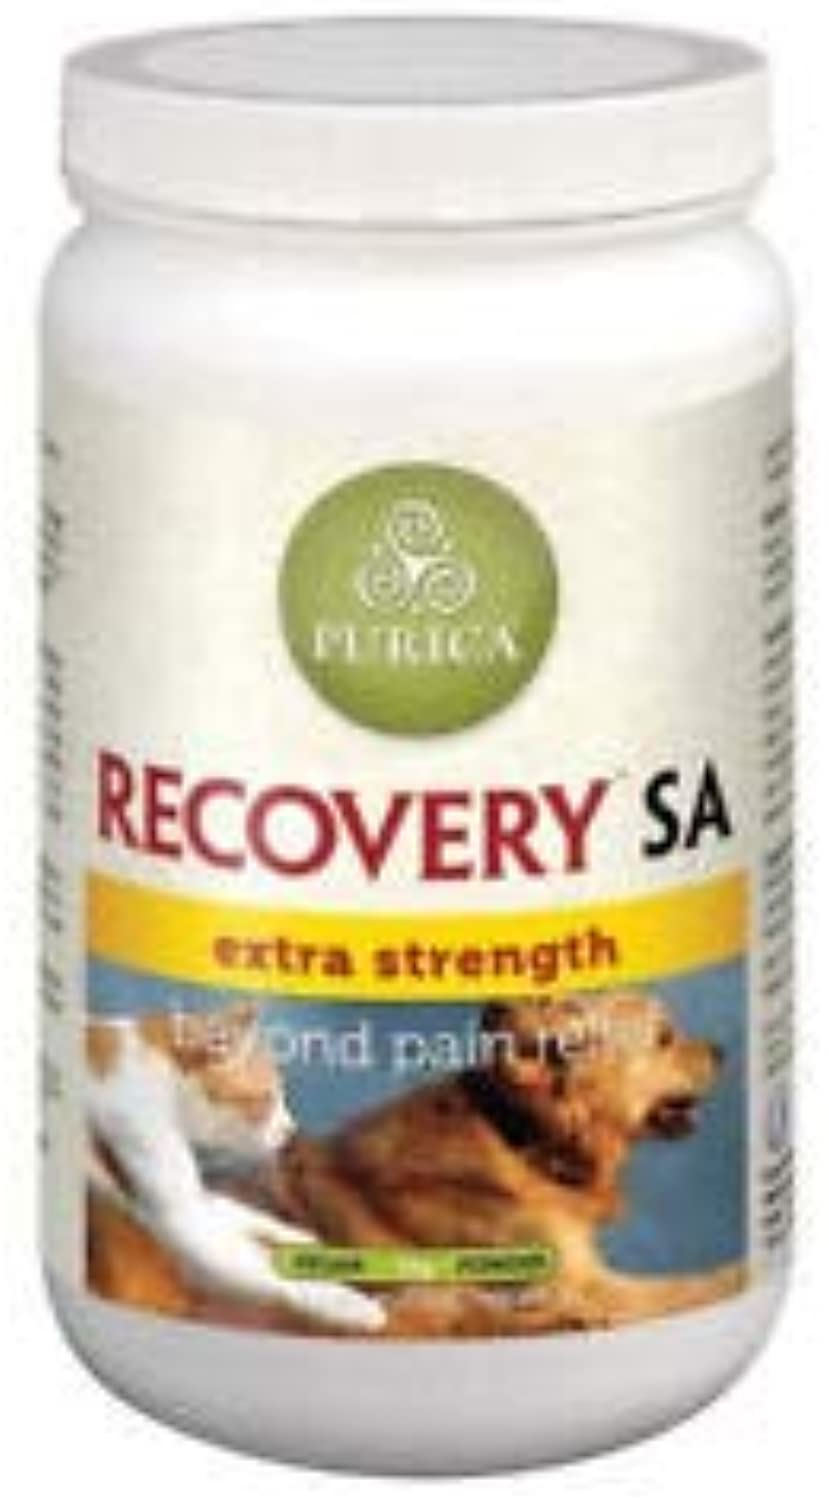 Purica Recovery SA Extra Strength  Chewable Tablets